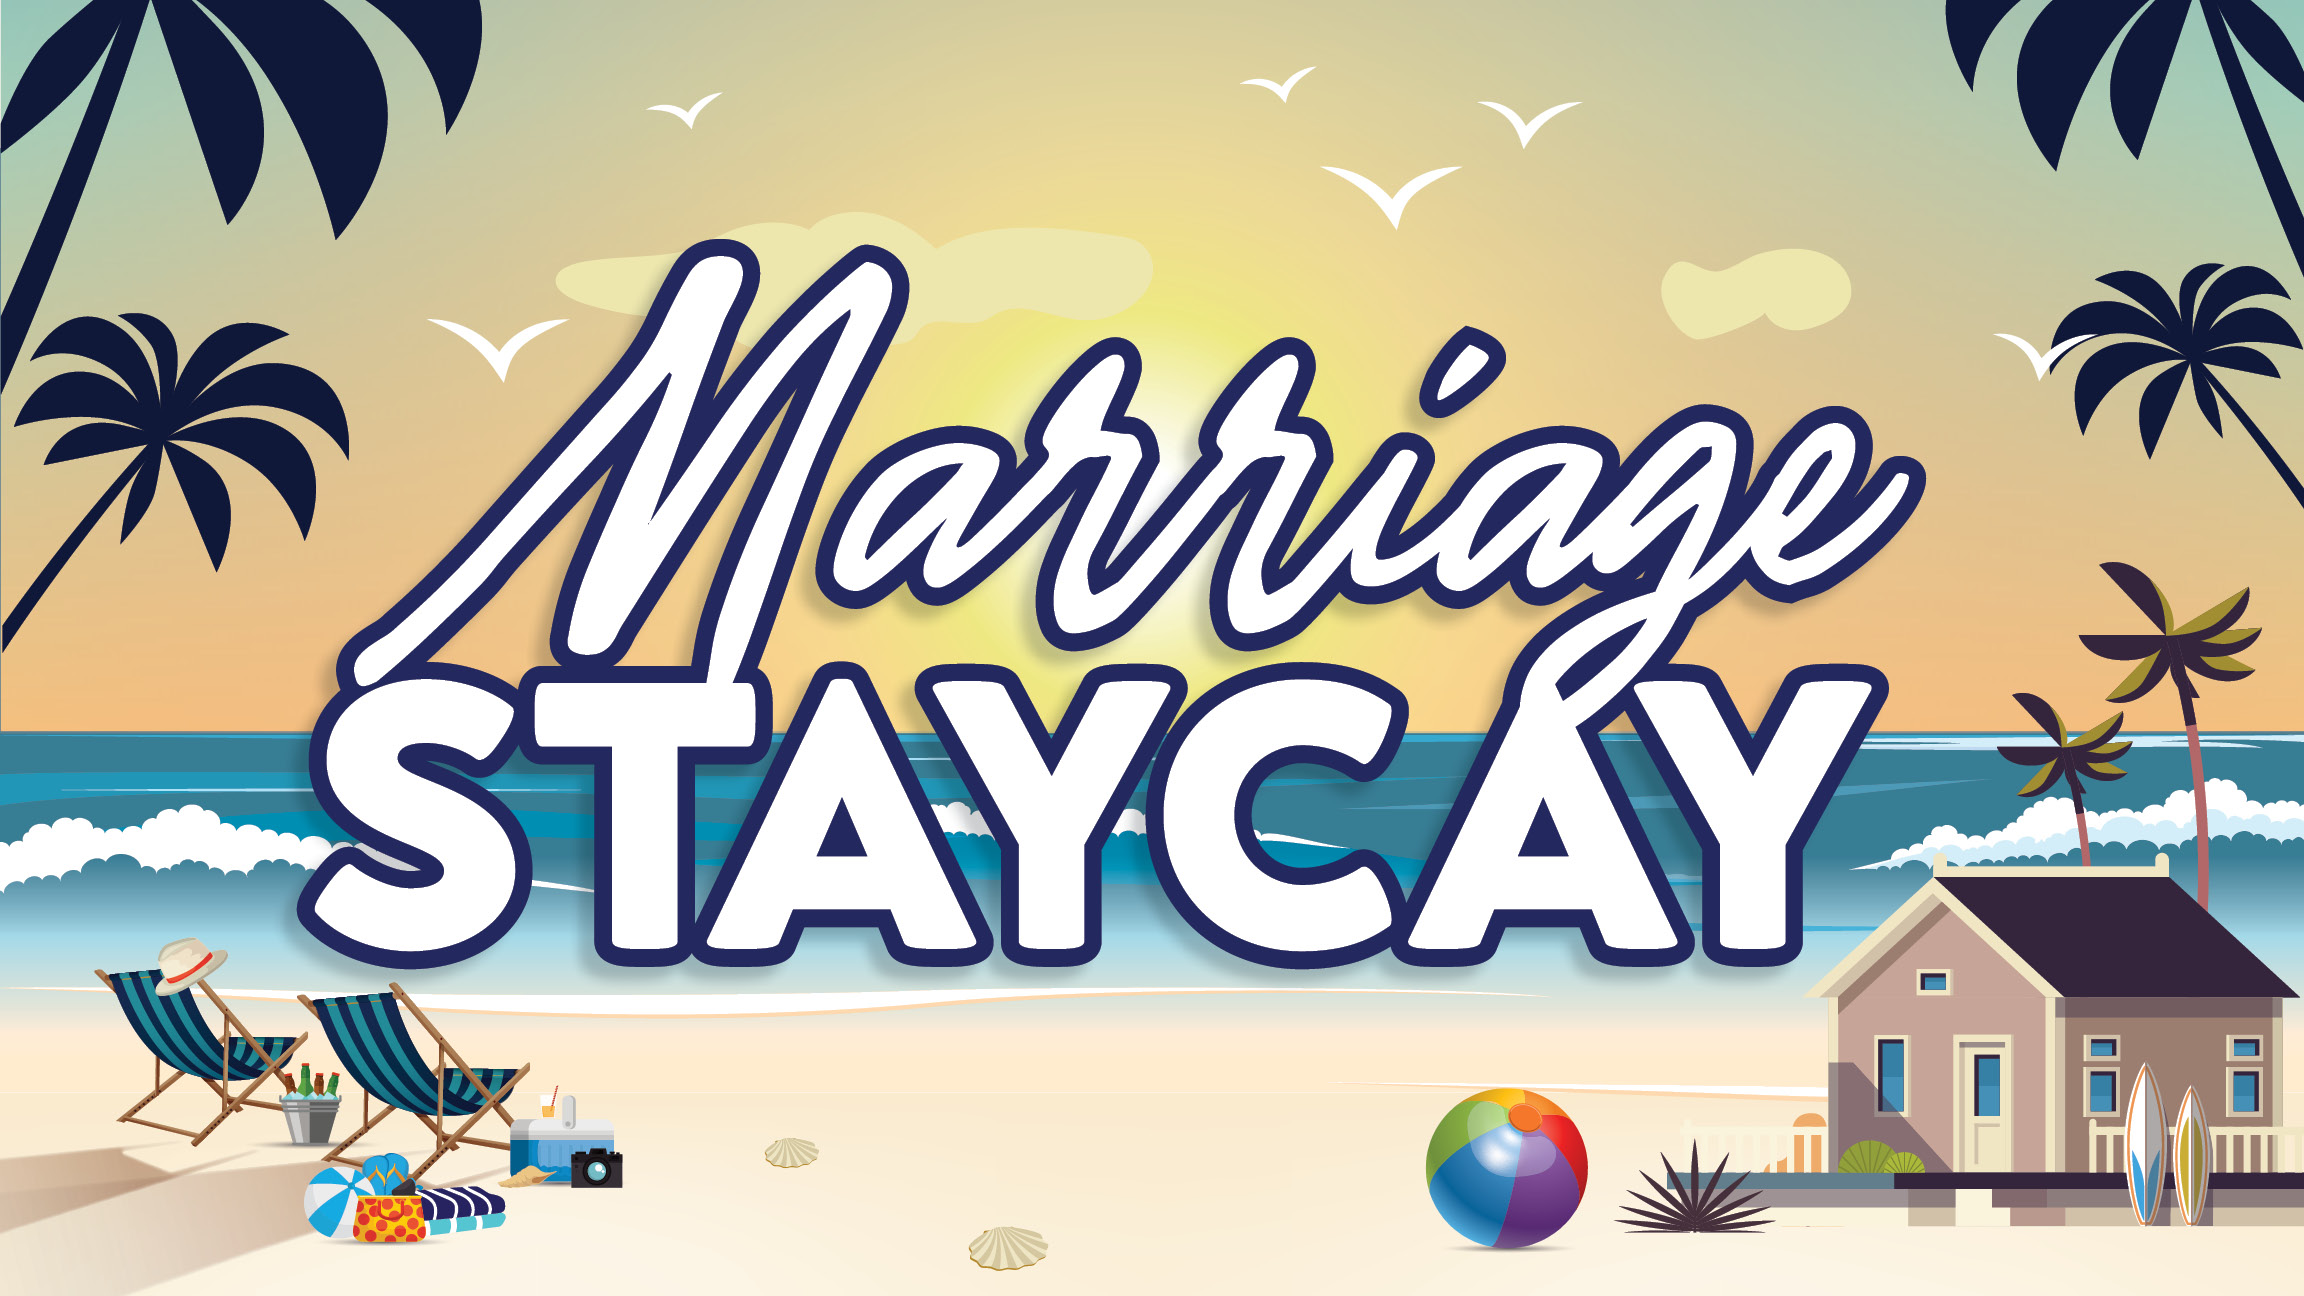 StayCay Logo without details